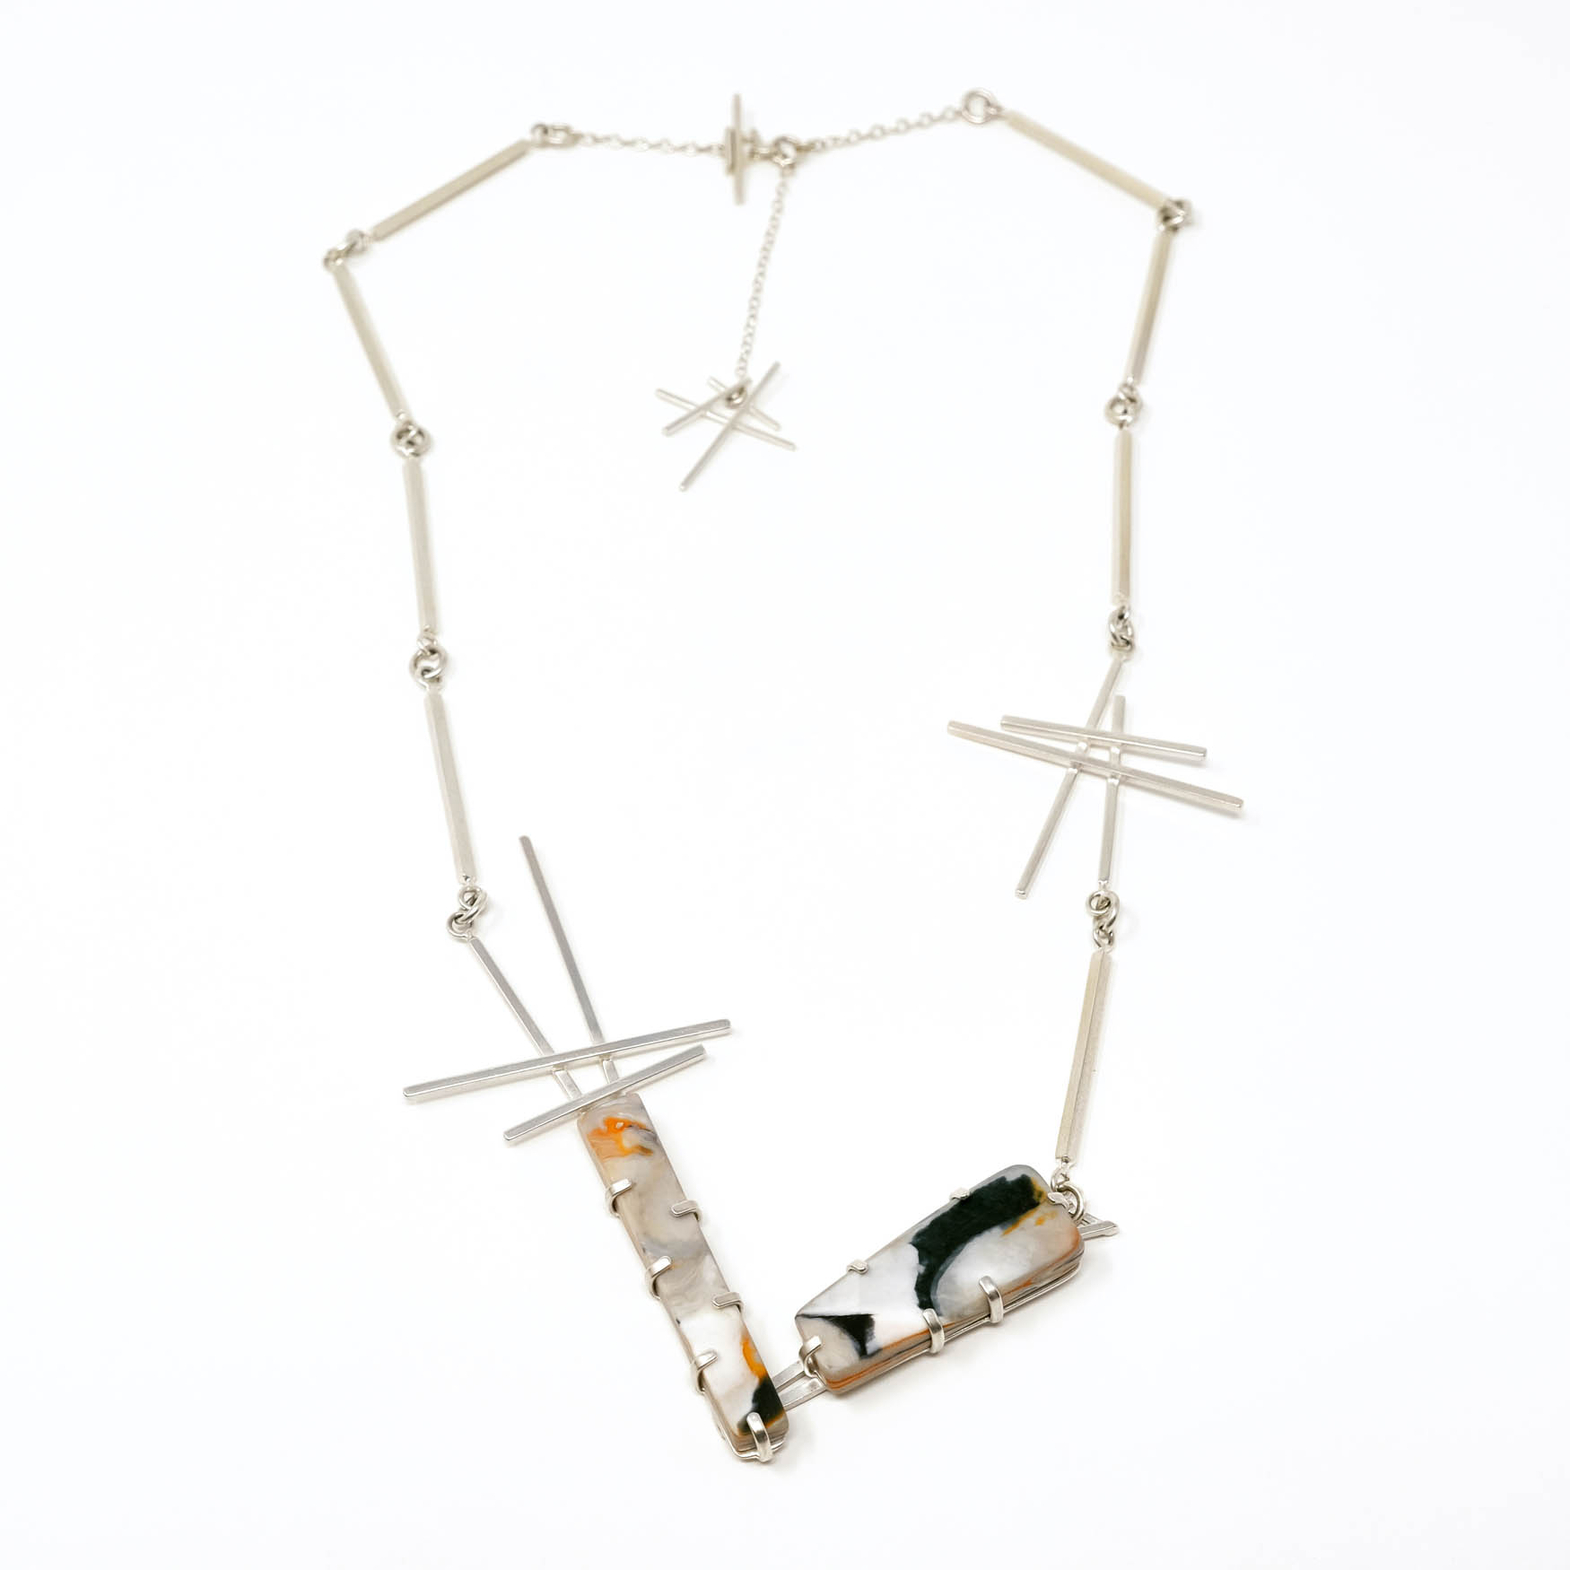 Deborah Beck Legacy Feature Neckpiece